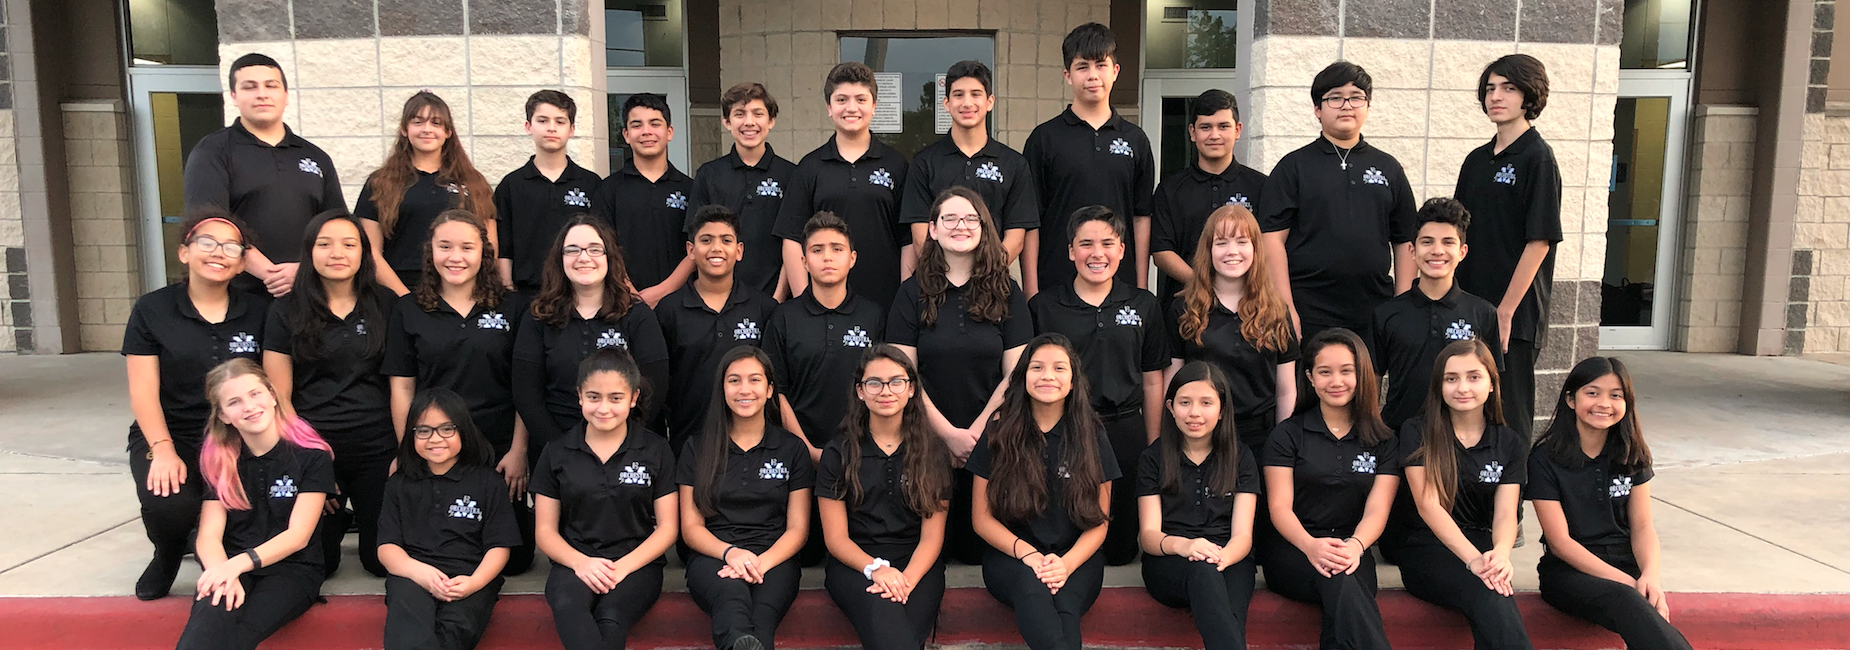 Varsity Orch Sweepstakes